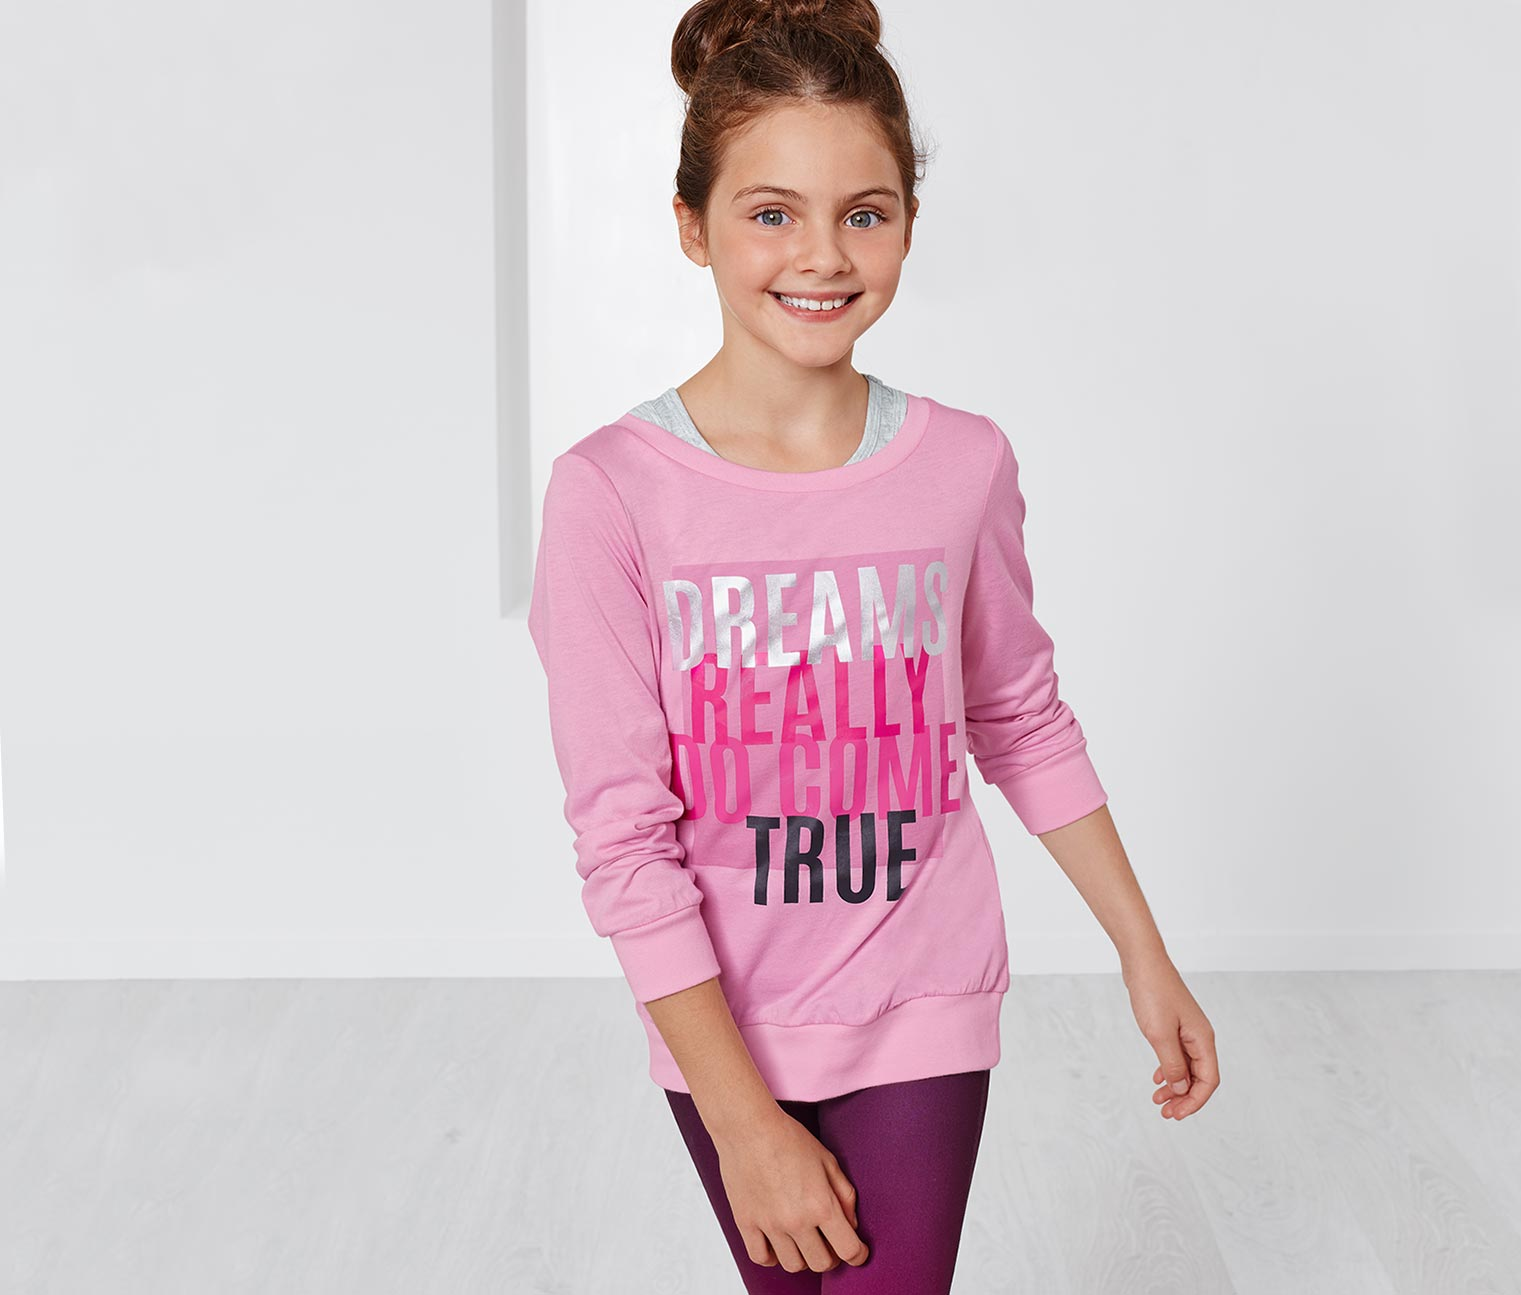 Girl's Sports Top With Tank Top, Pink/Gray